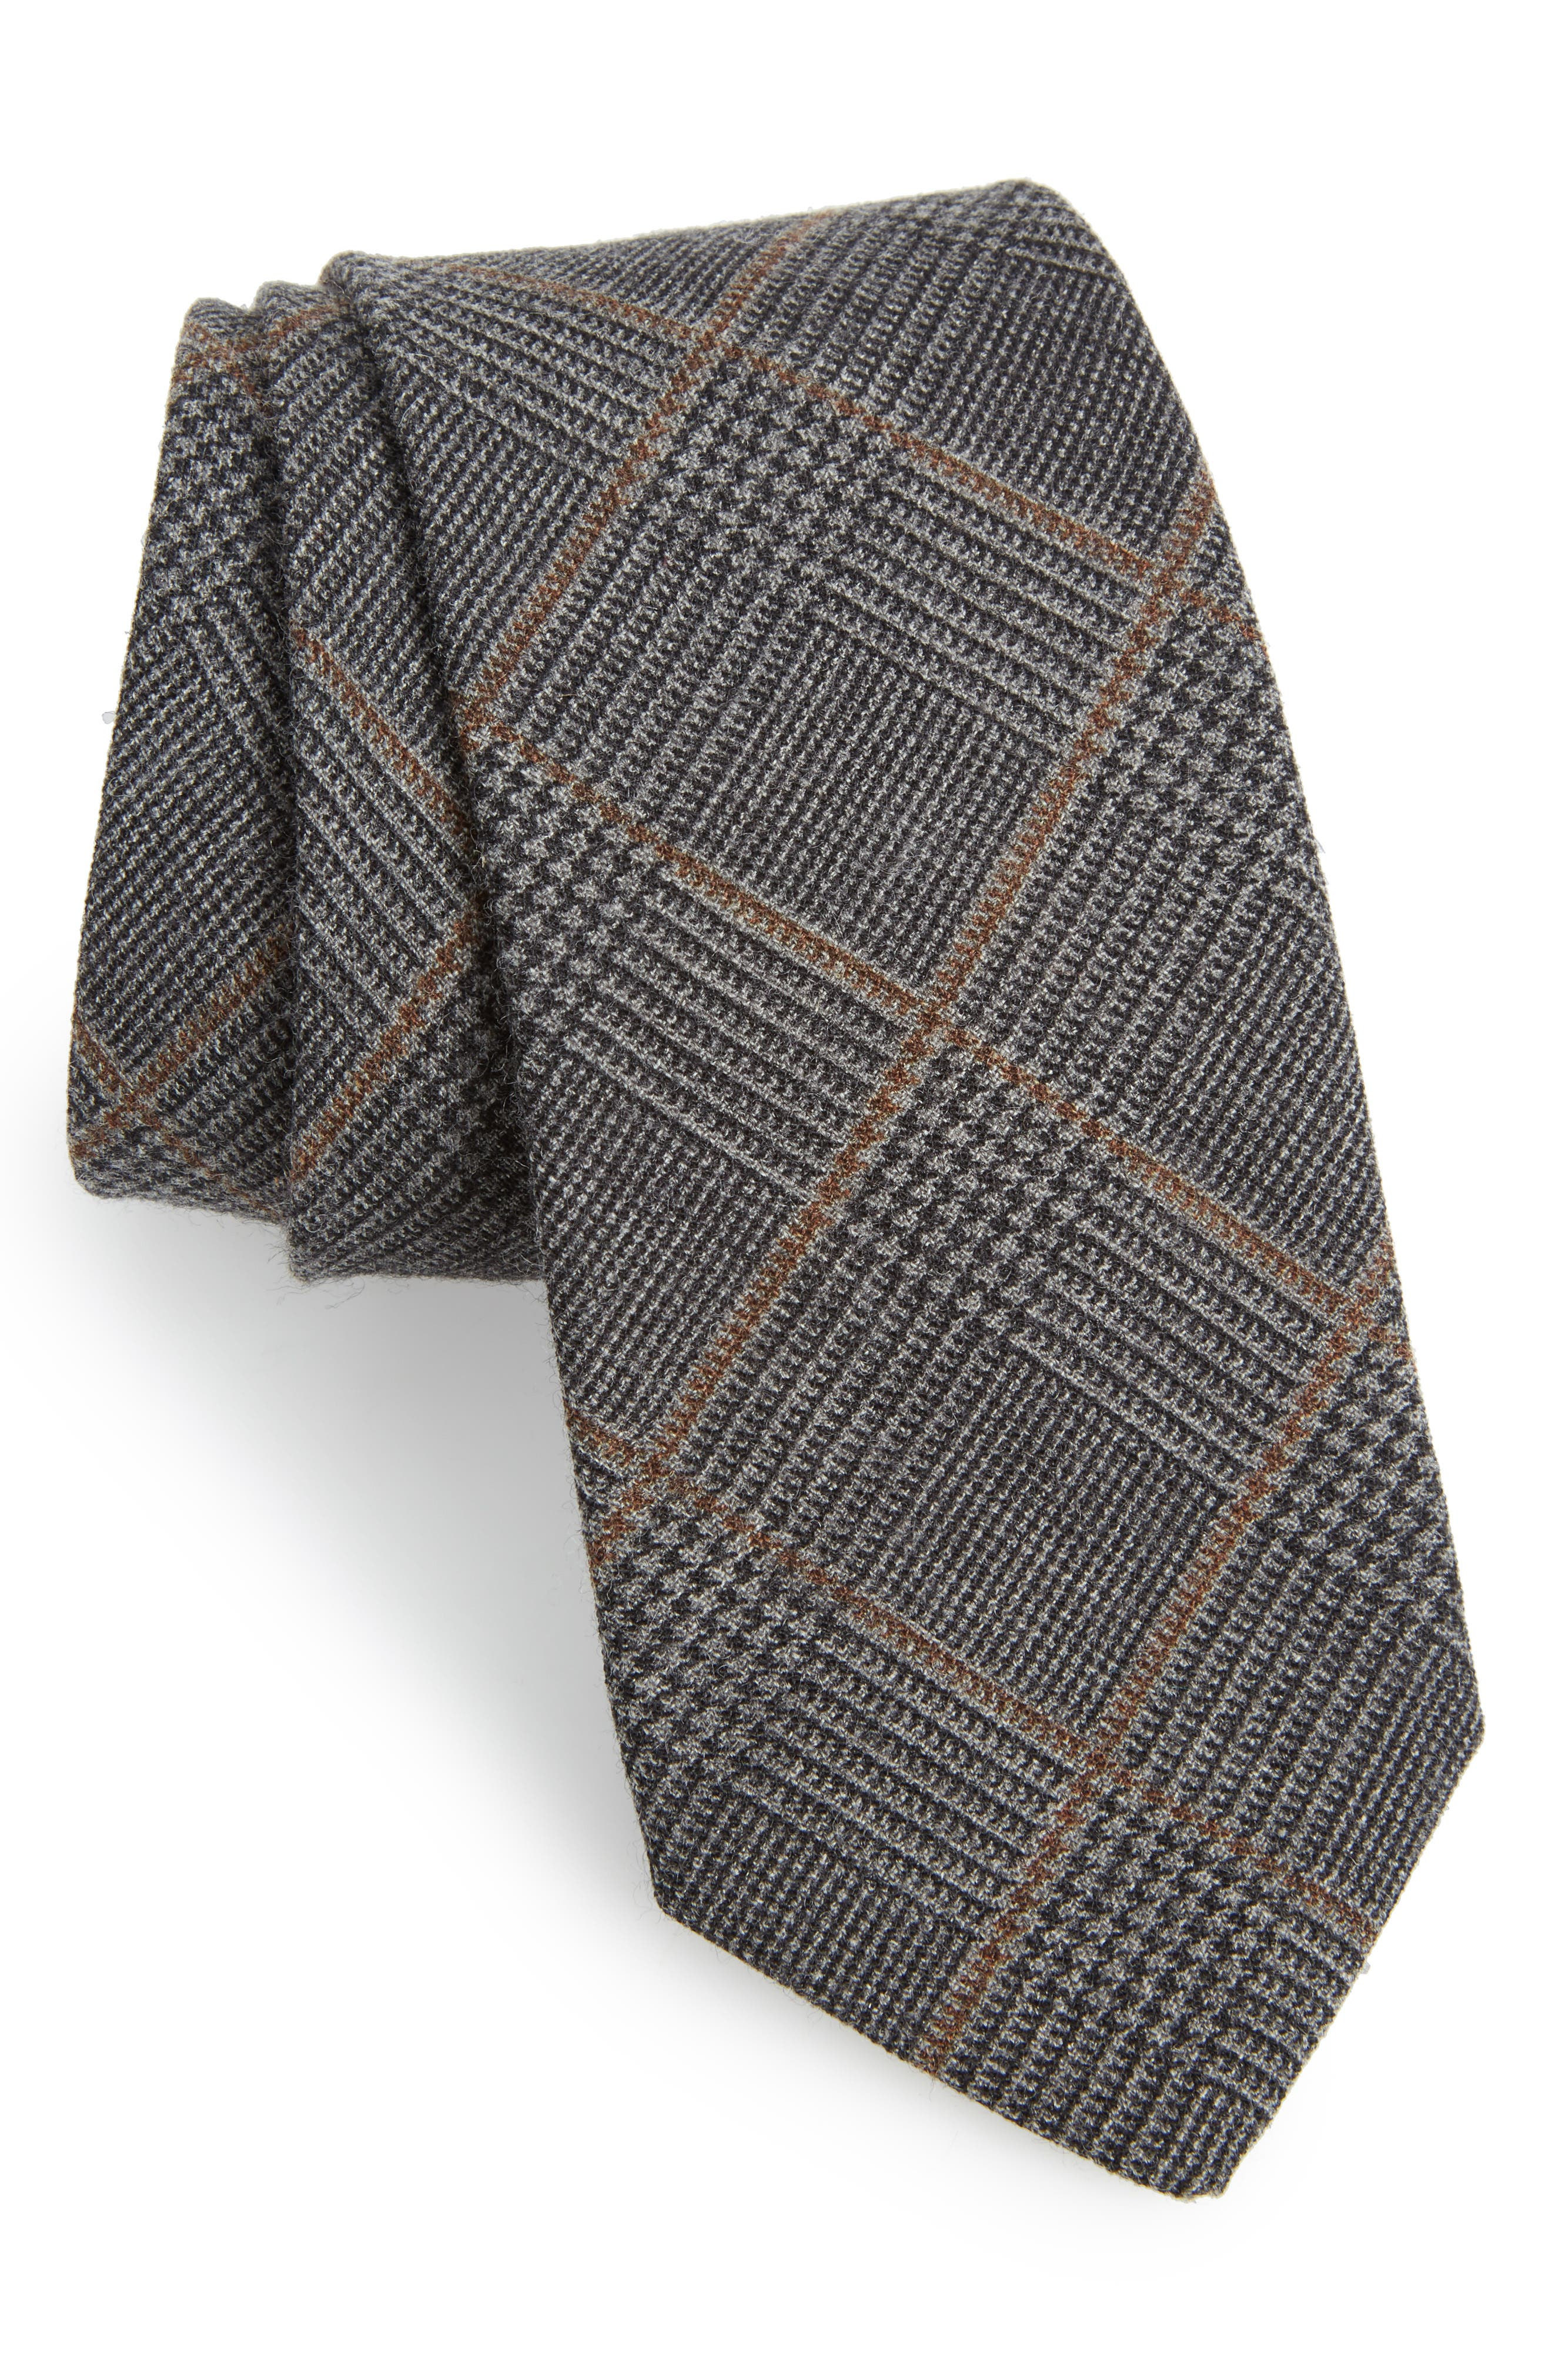 Main Image - Bonobos Dupont Glen Plaid Wool Tie